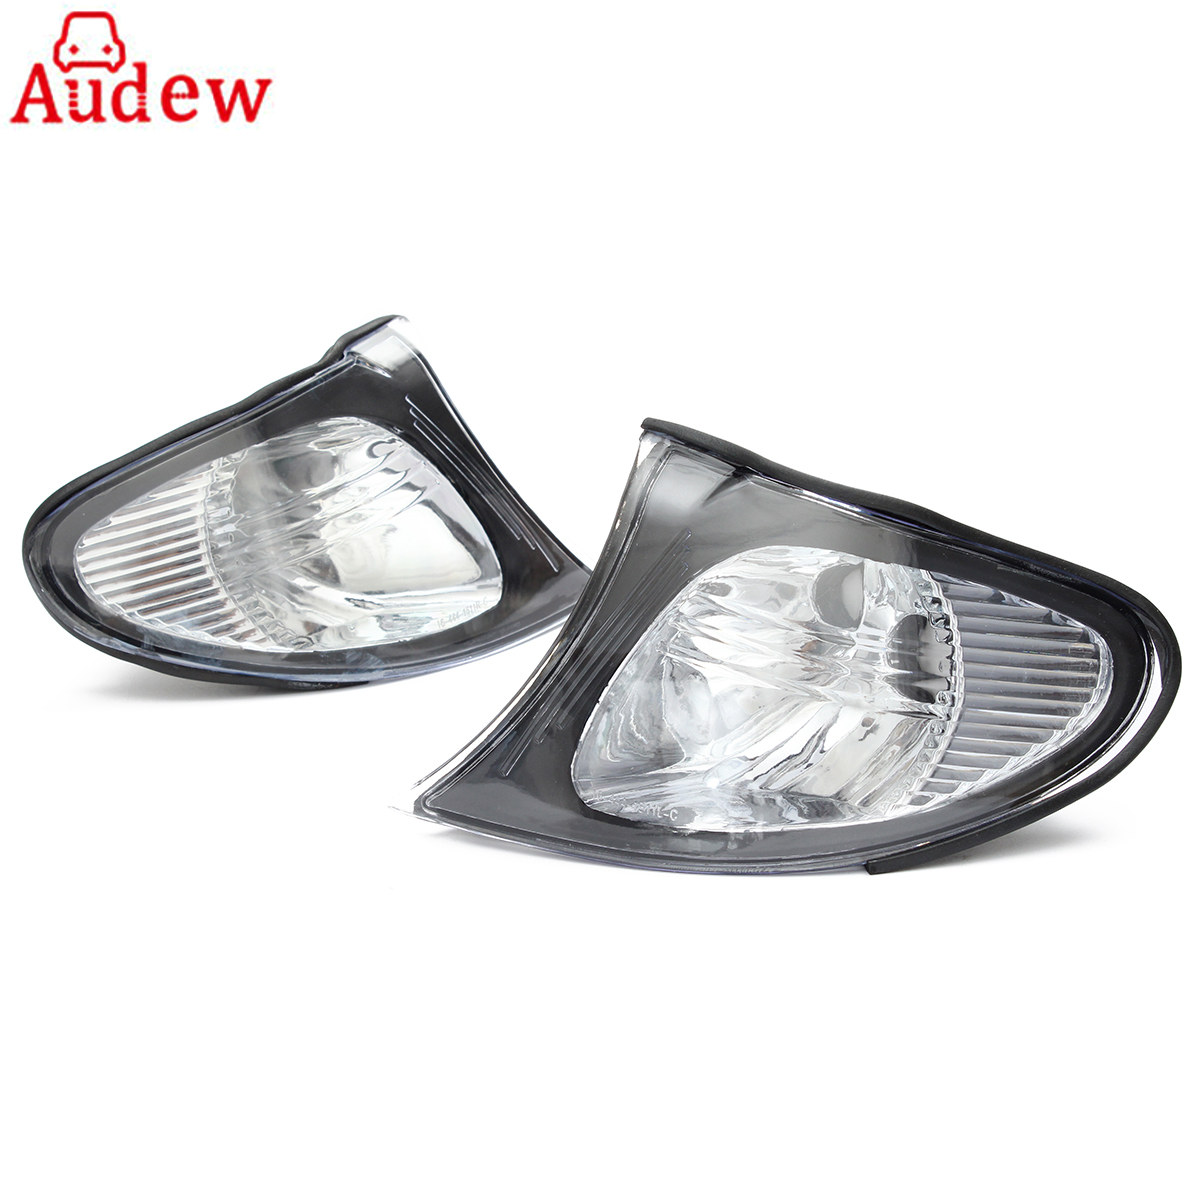 1 Pair Brand New Car Corner Lights Sidelights Lens Clear Left&amp;Right For BMW E46 3-Series 4DR 02-05<br>